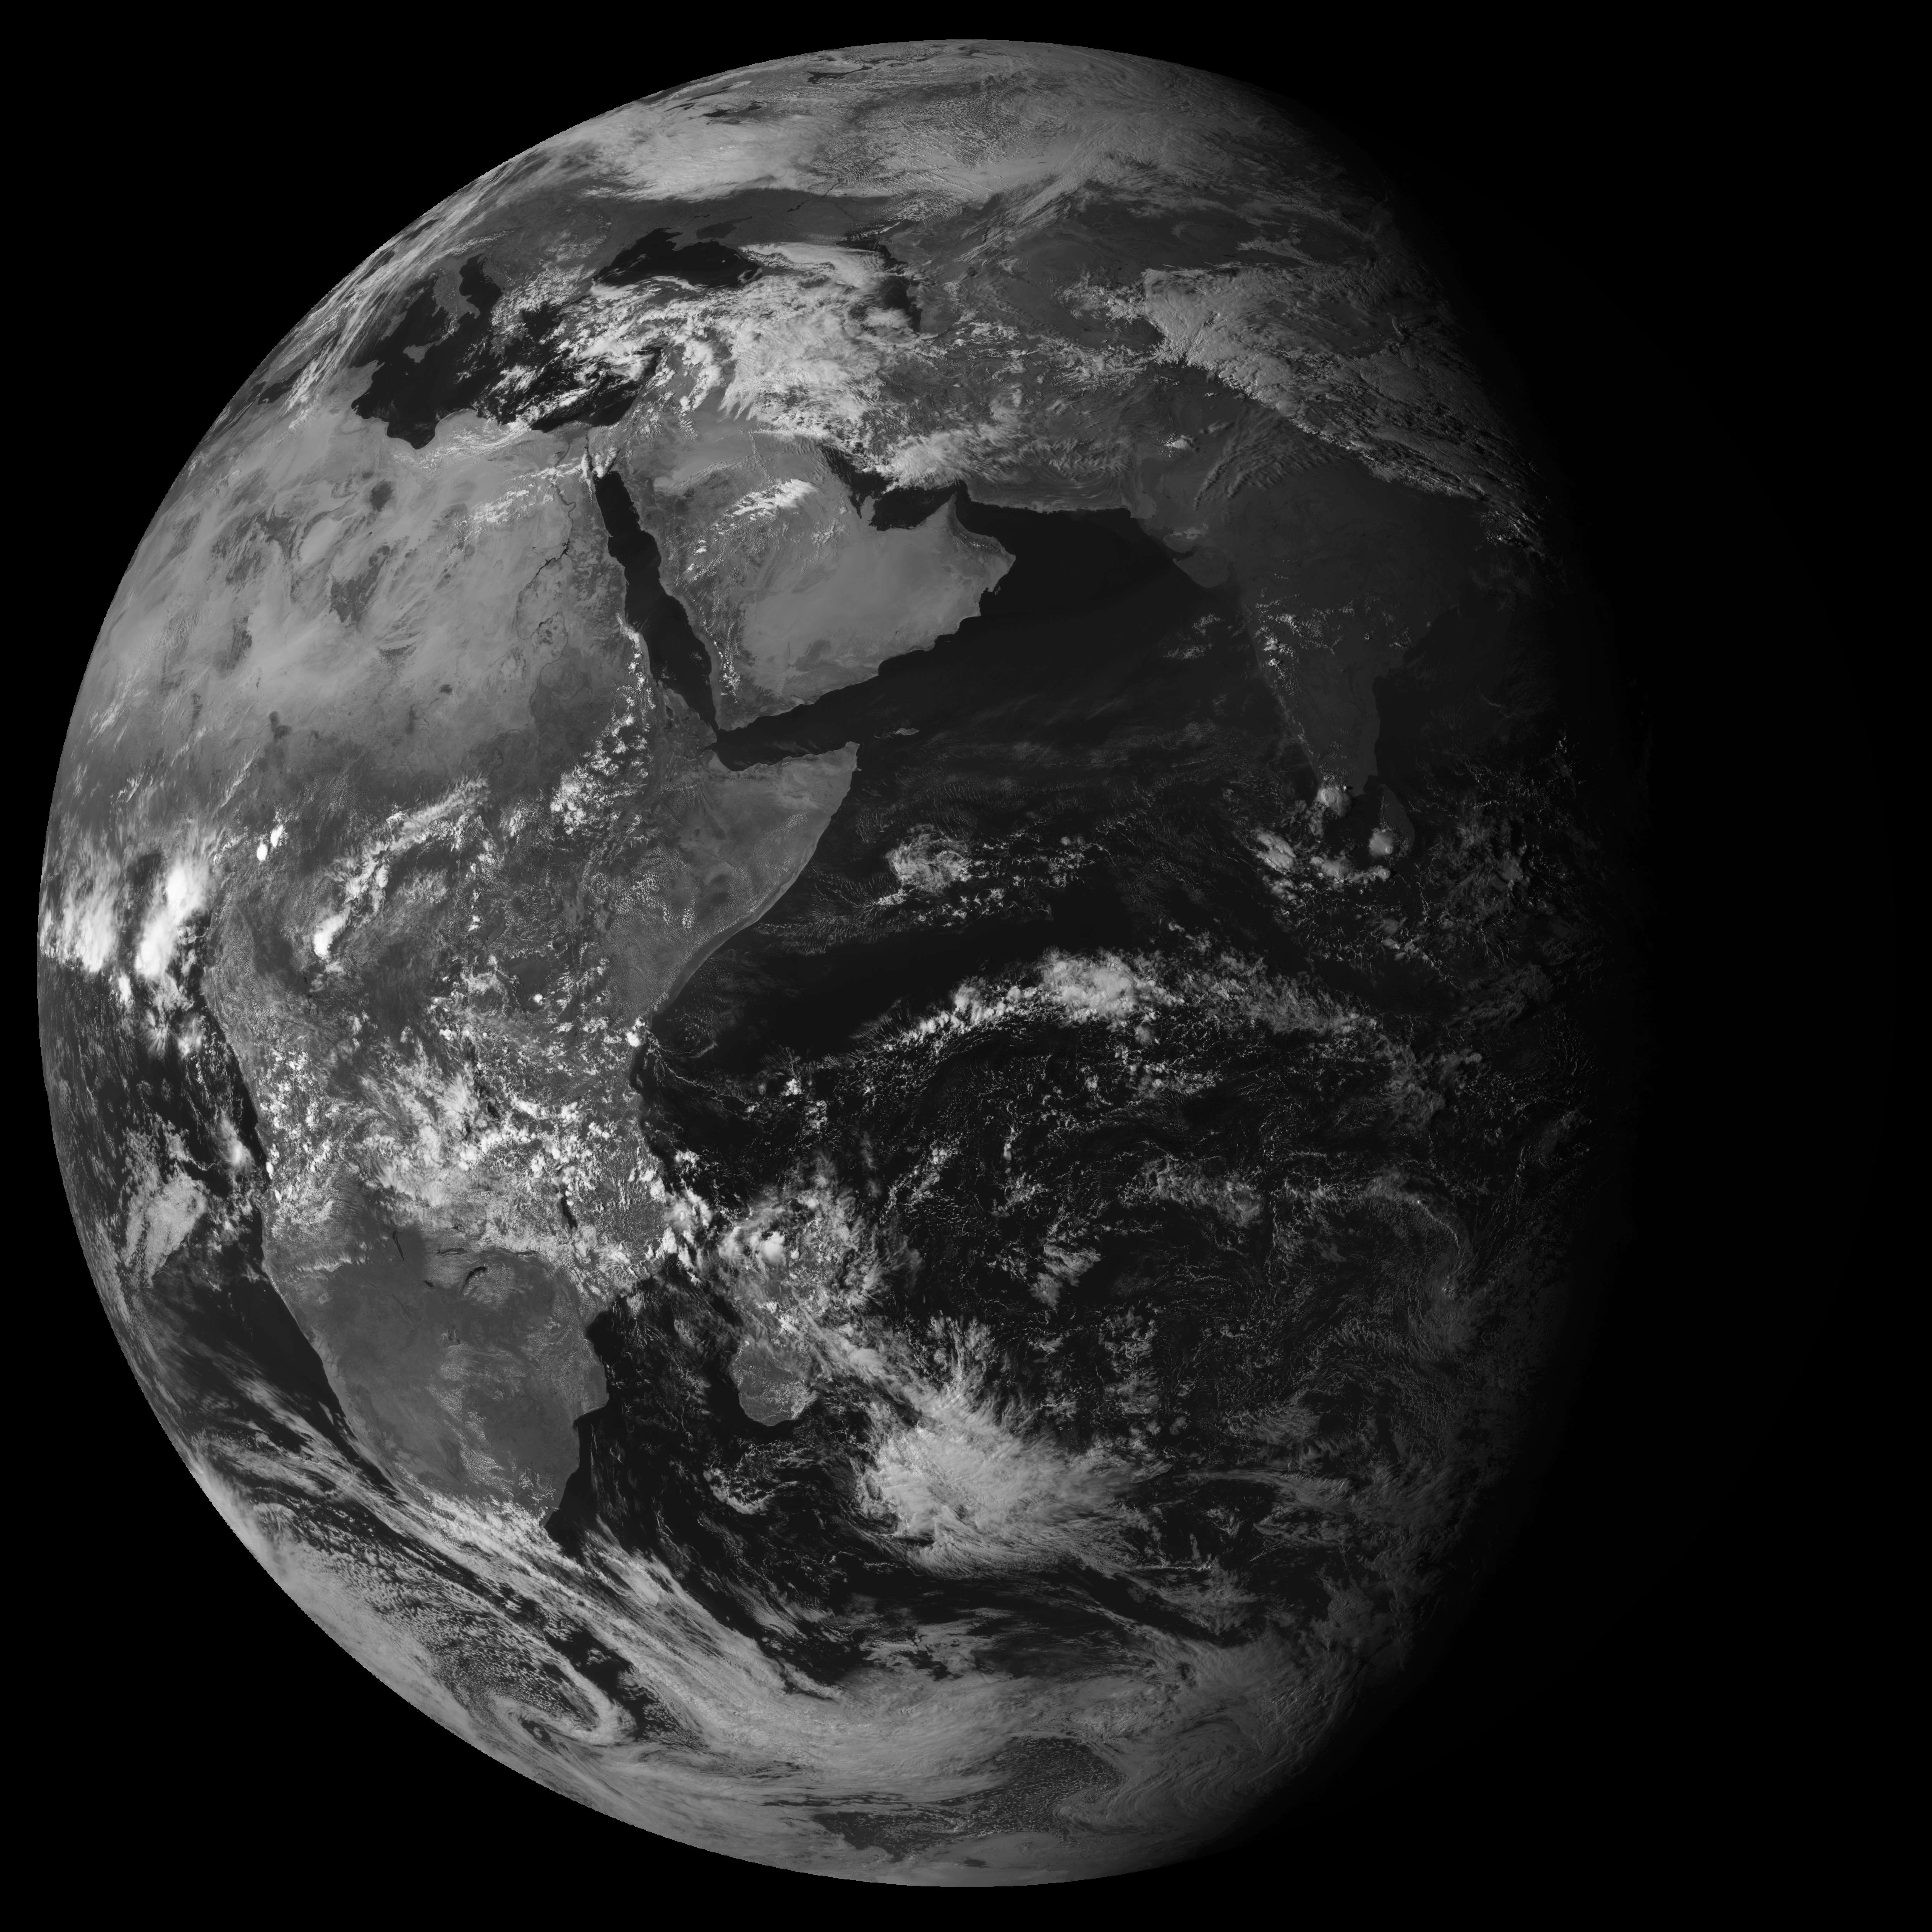 Final image scan from Meteosat-7 on 31 March 2017 11:30 to 12:00 UTC